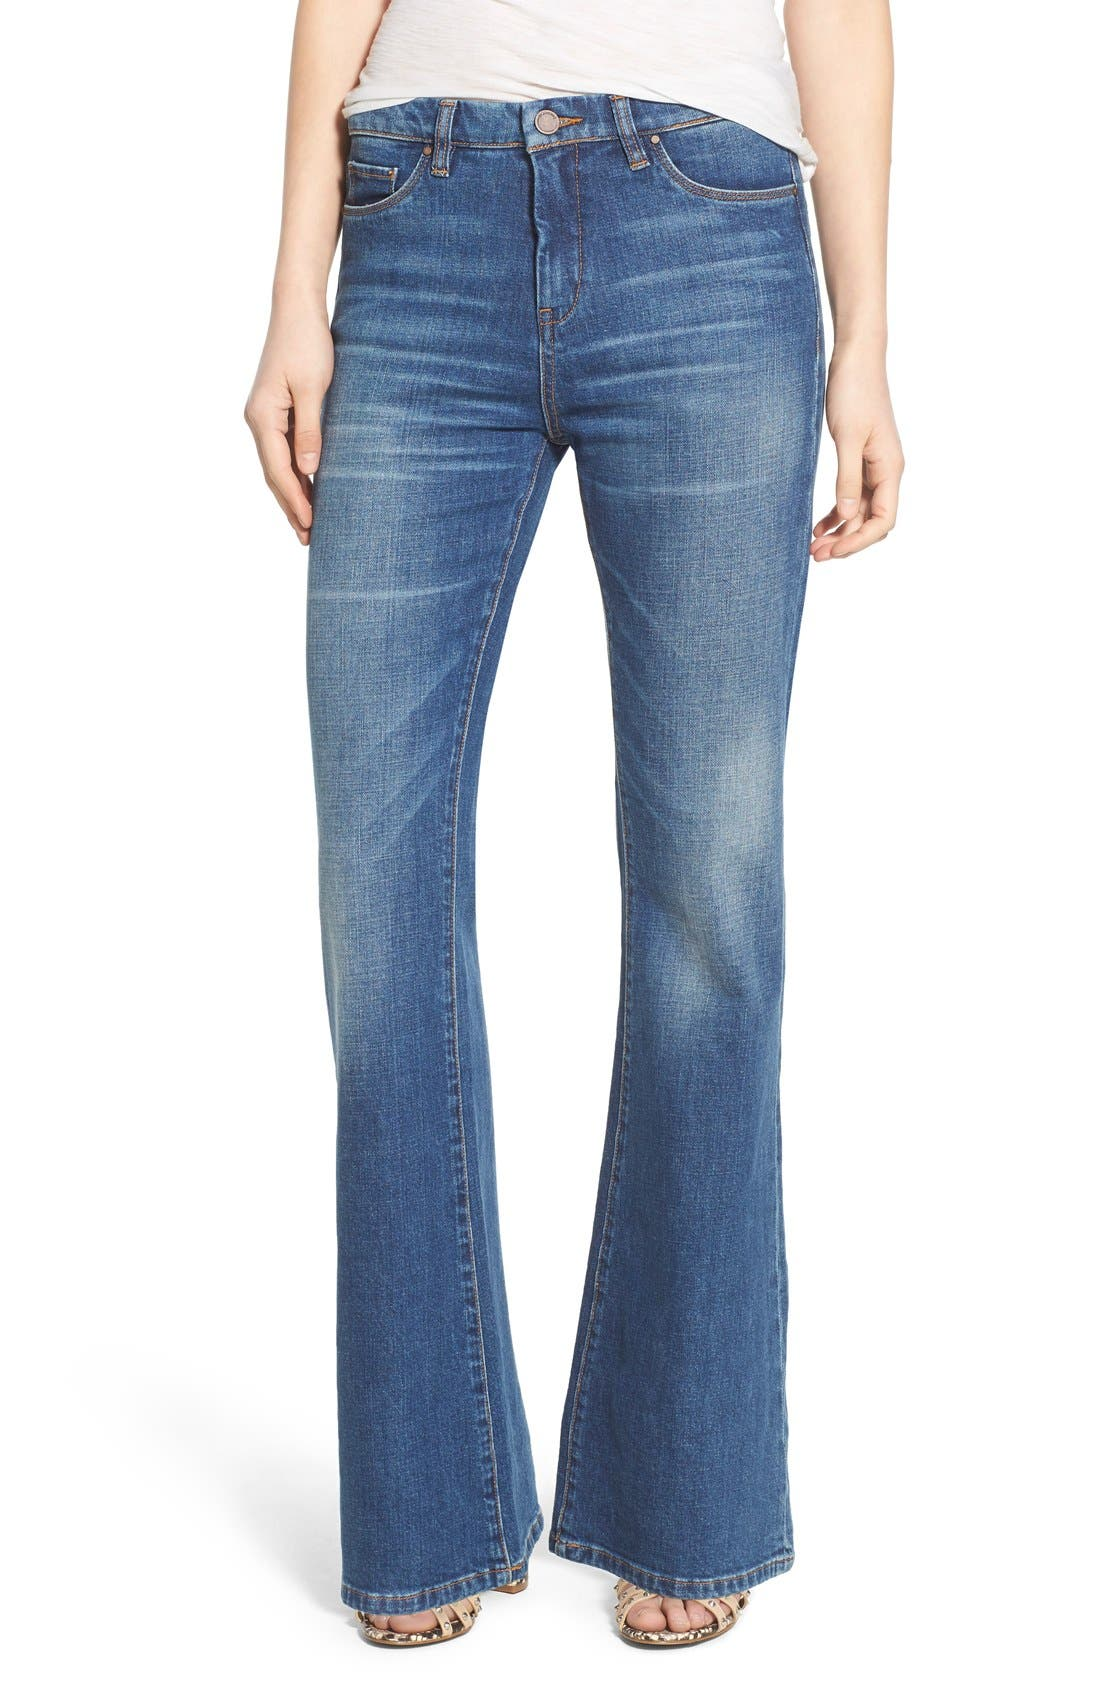 Alternate Image 1 Selected - BLANKNYC High Rise Flare Jeans (All Day)